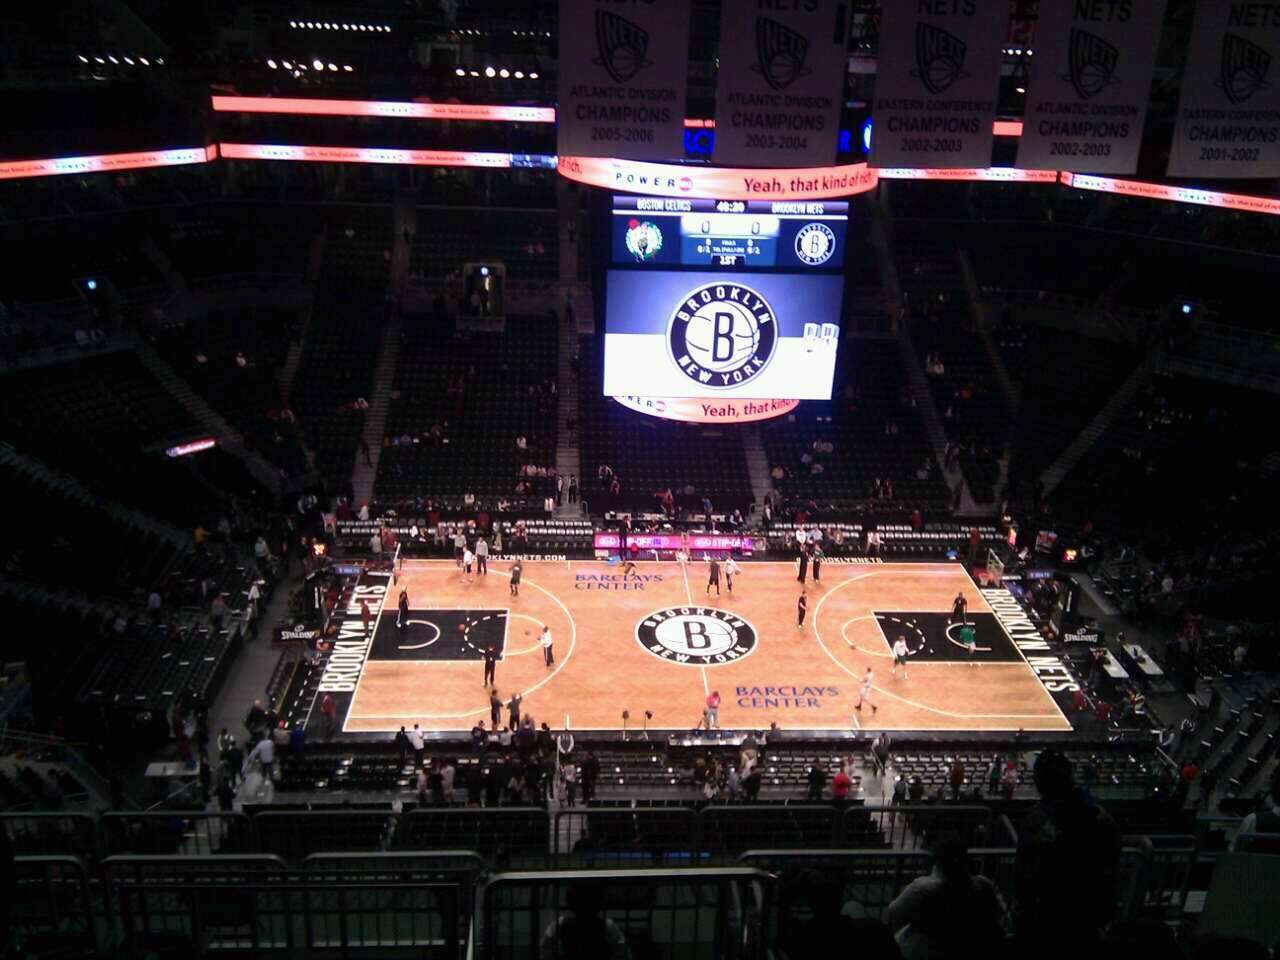 Barclays Center section 225 row 12 seat 10 - Brooklyn Nets ...